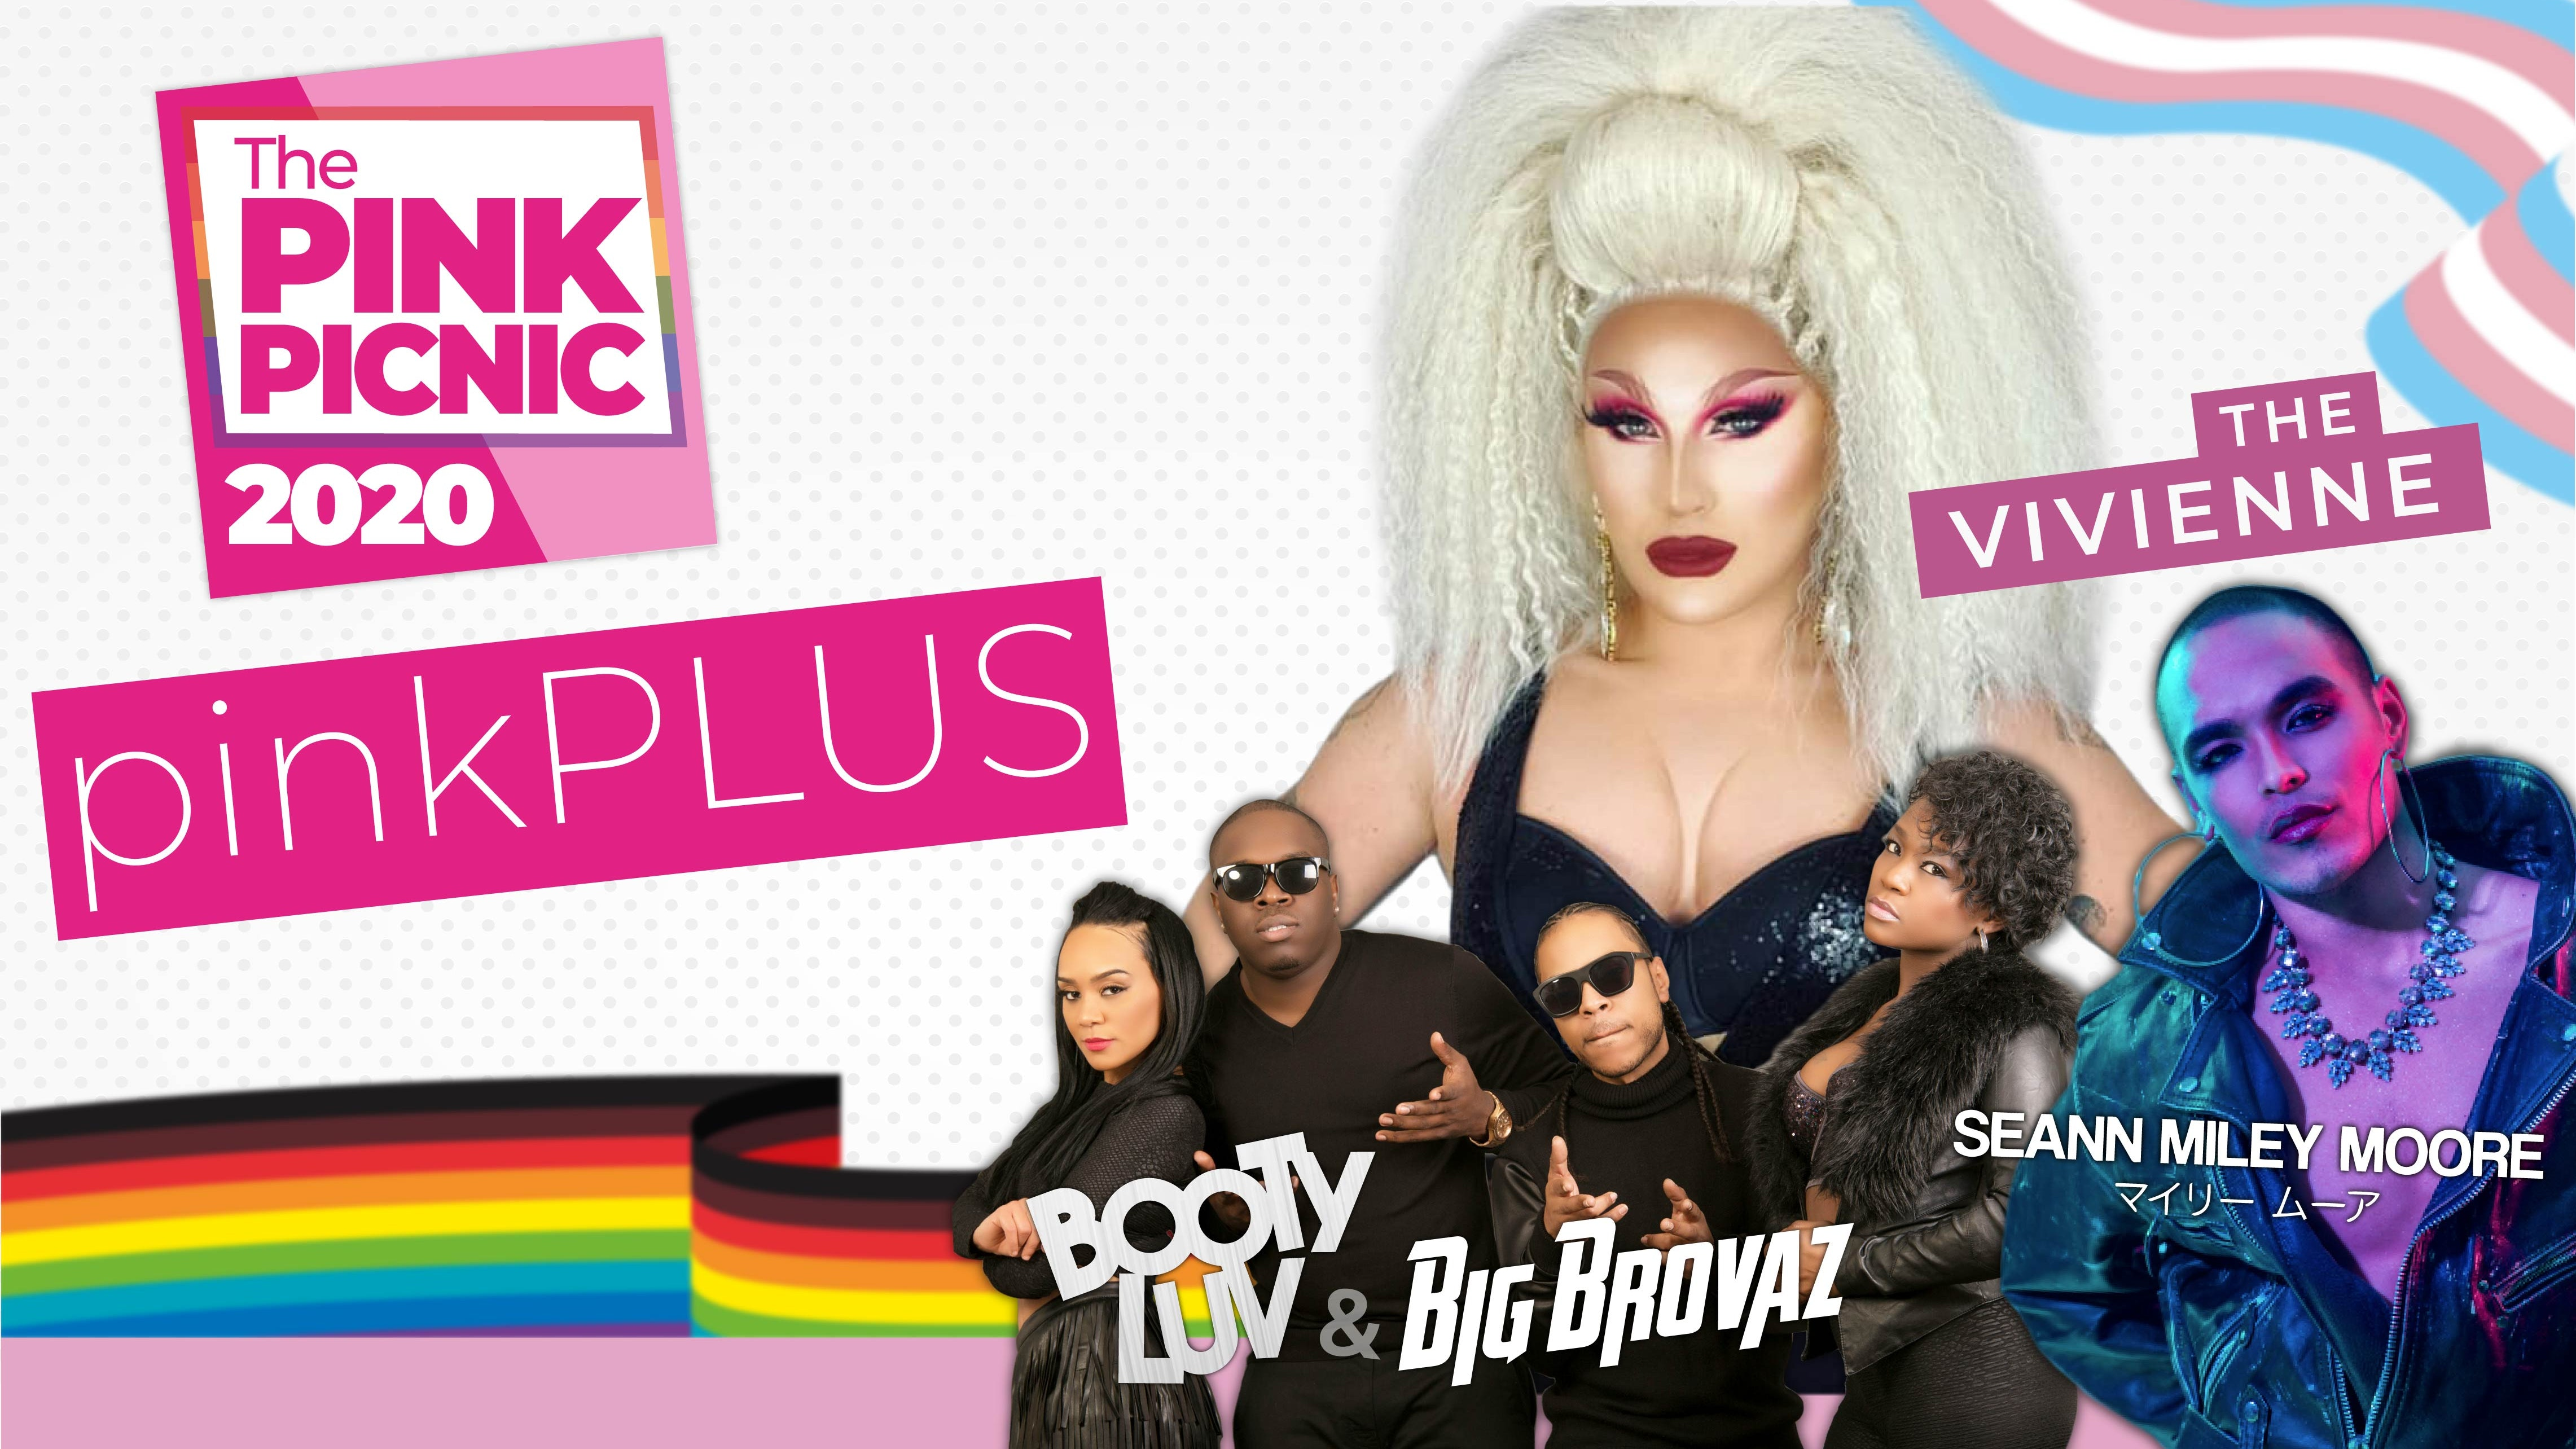 The Pink Picnic 2020 – pinkPLUS Experience